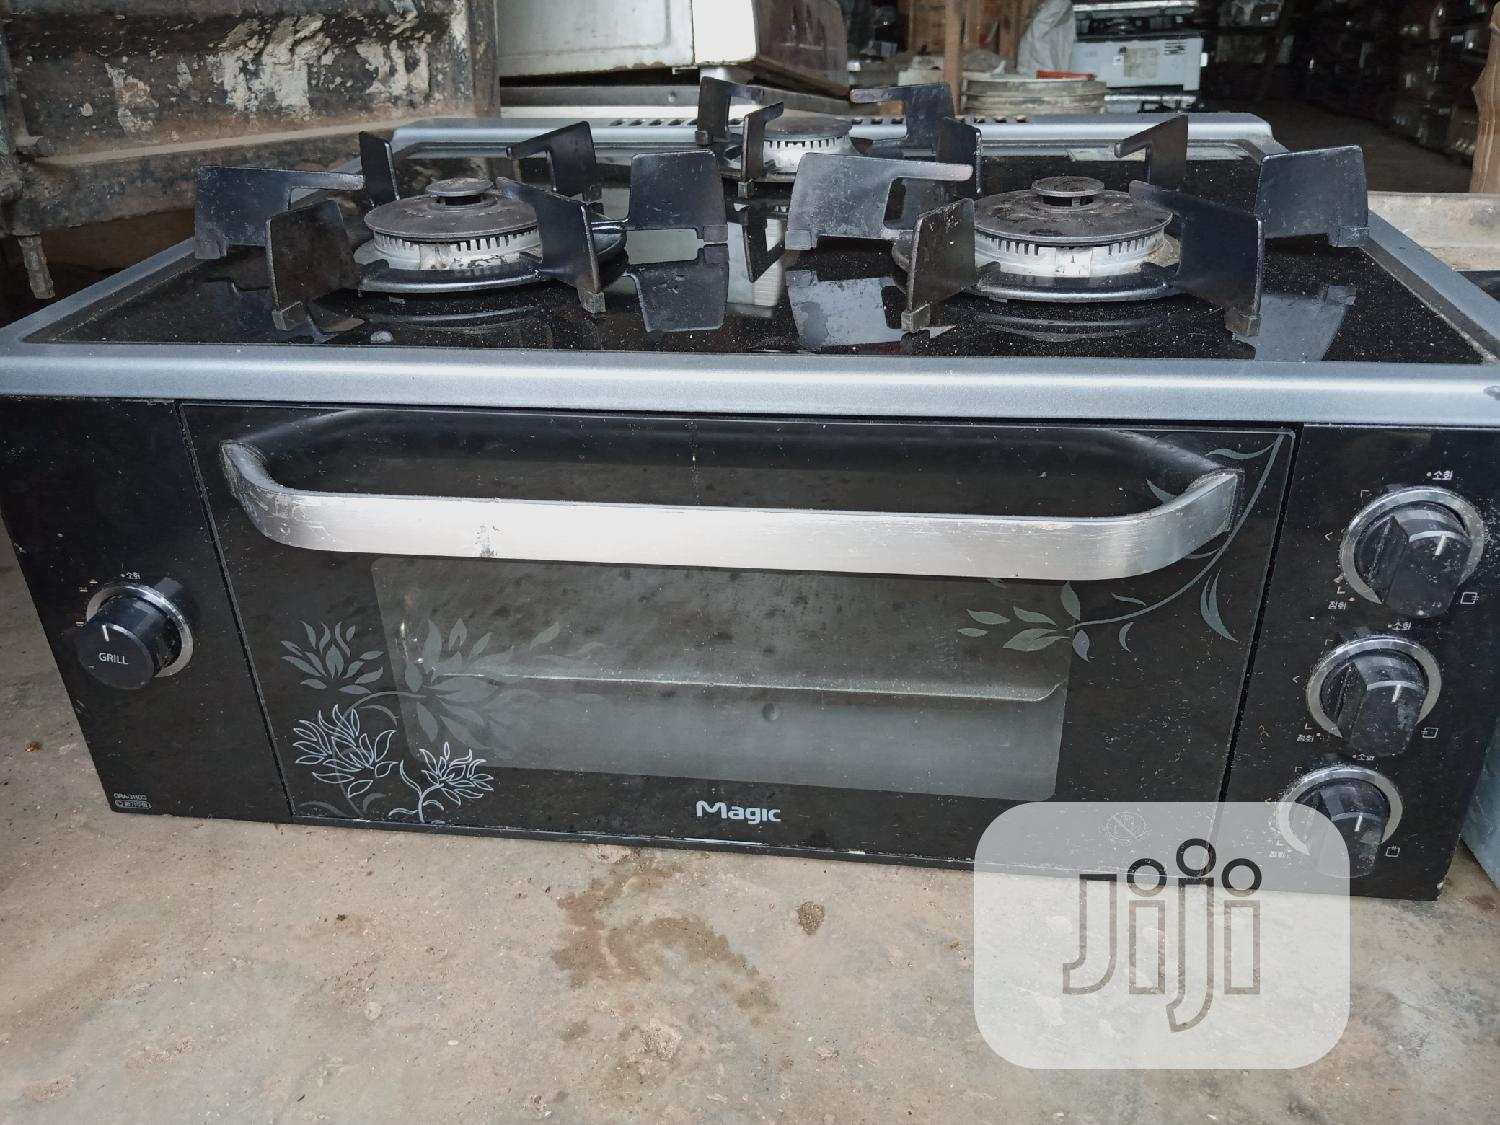 3 Bunner Table Gass Cooker With Grill And Oven | Kitchen Appliances for sale in Lekki Phase 2, Lagos State, Nigeria